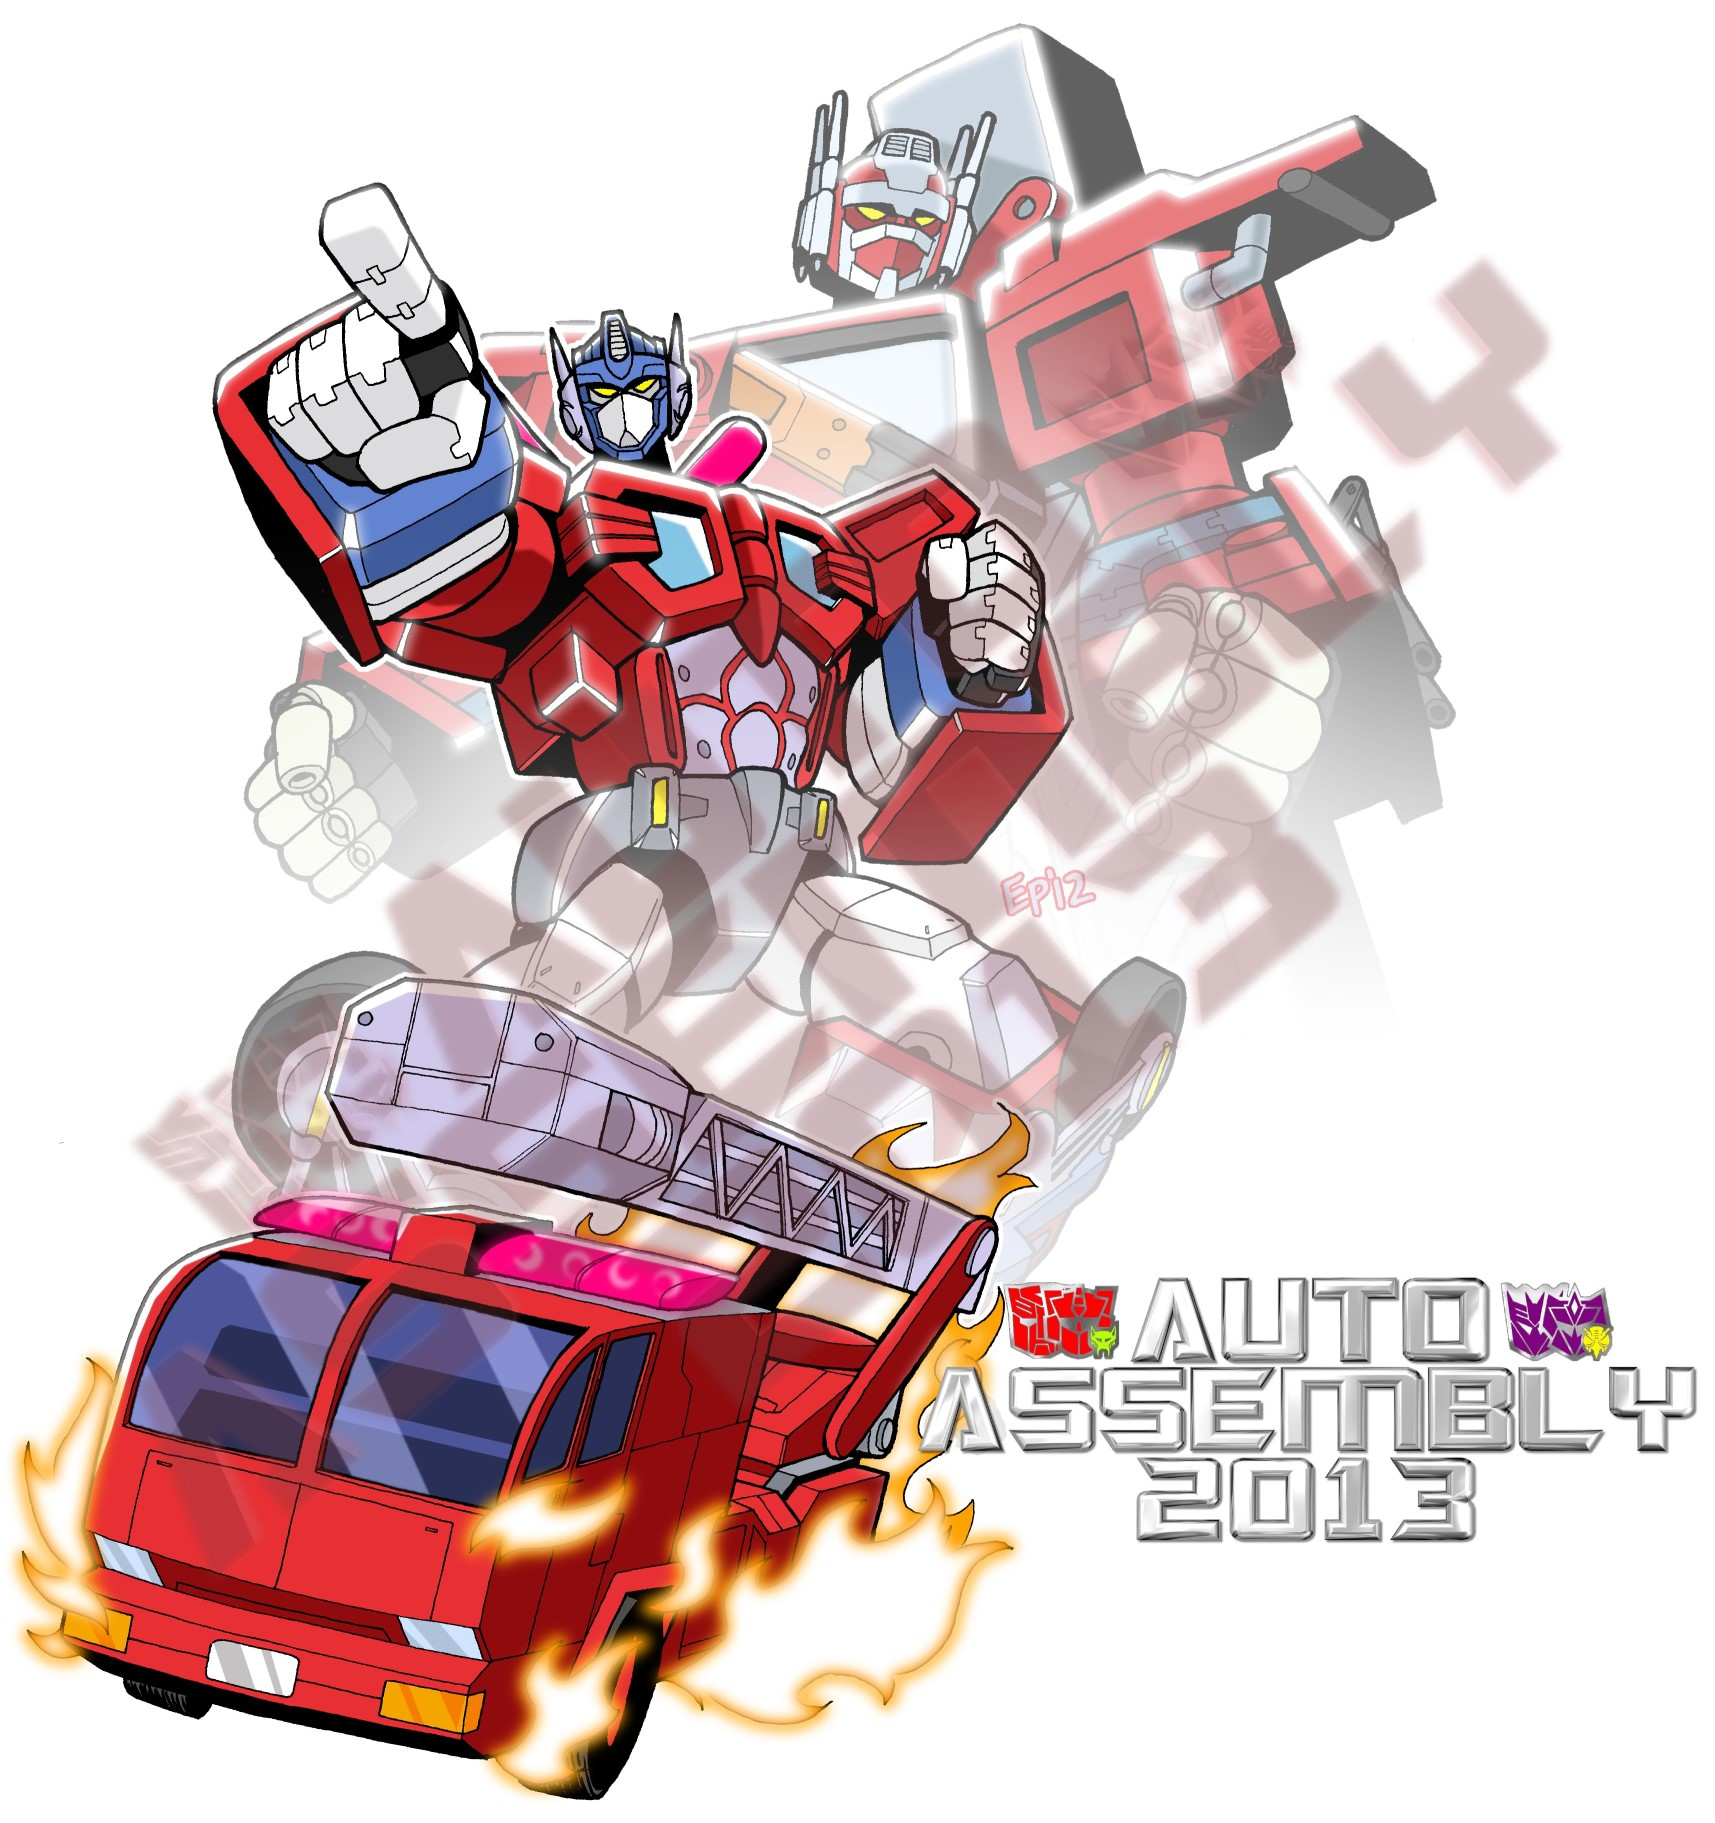 Auto Assembly 2013 Exclusive T-Shirt - Optimus Prime